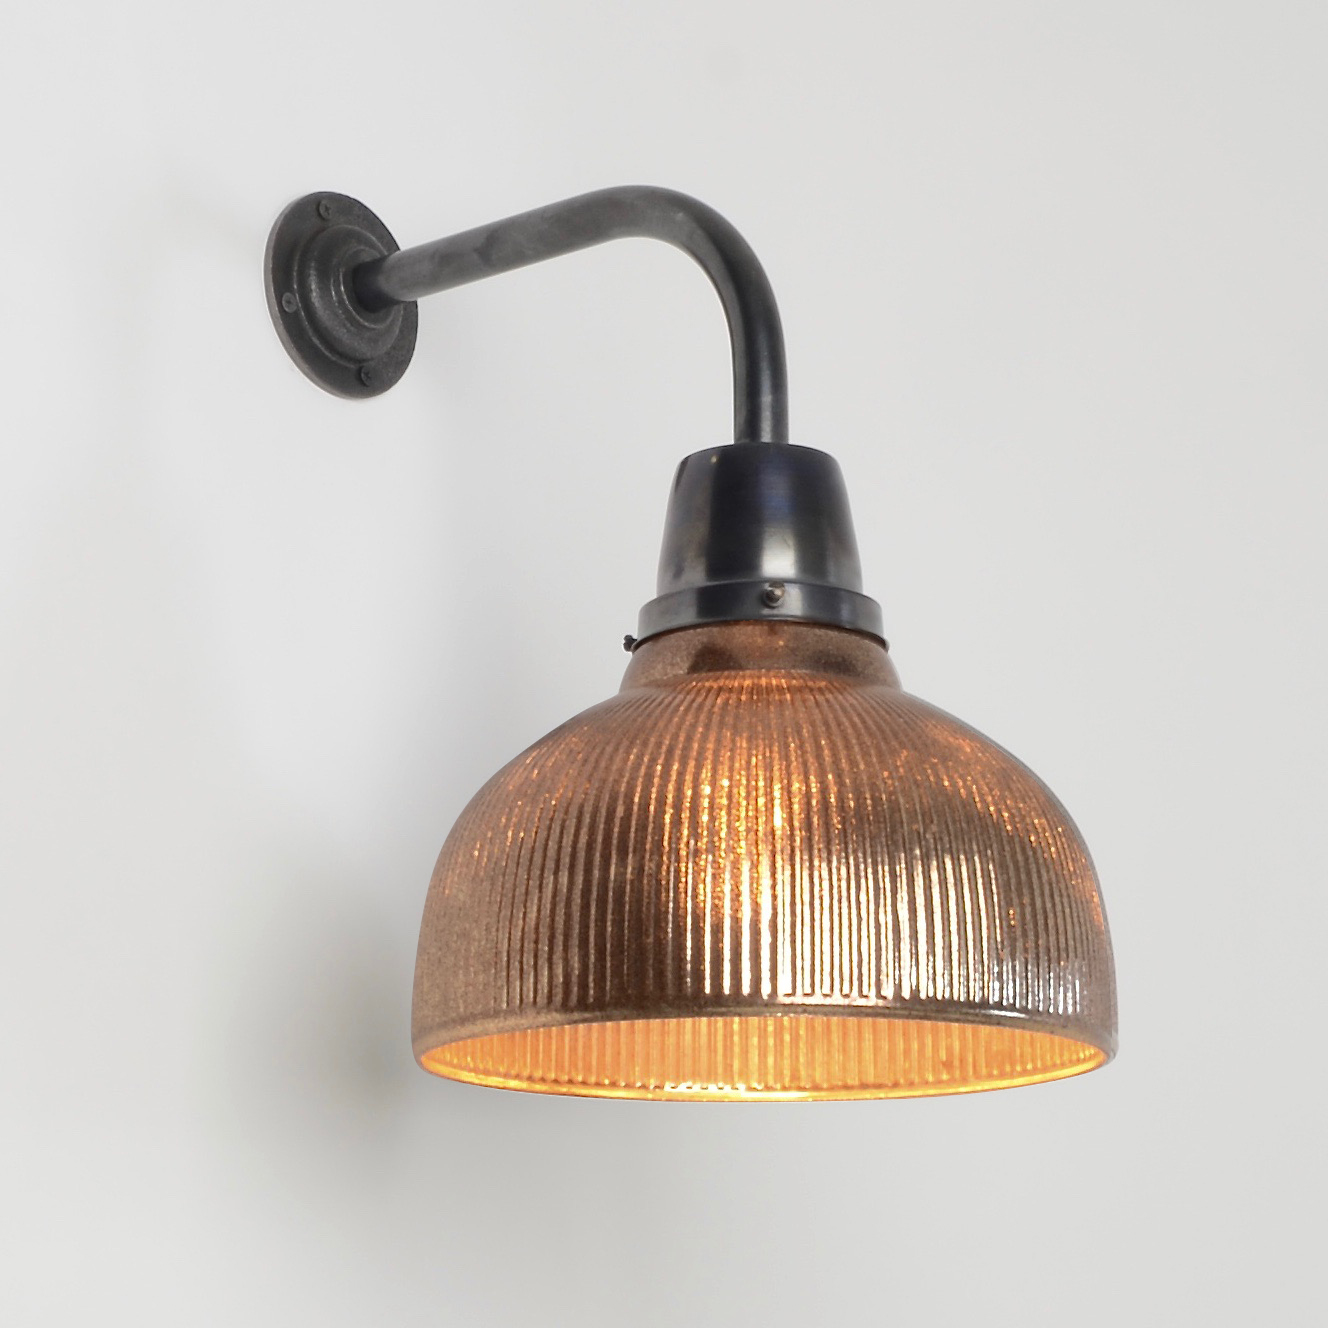 Vintage wall light - 10 tips for choosing Warisan Lighting